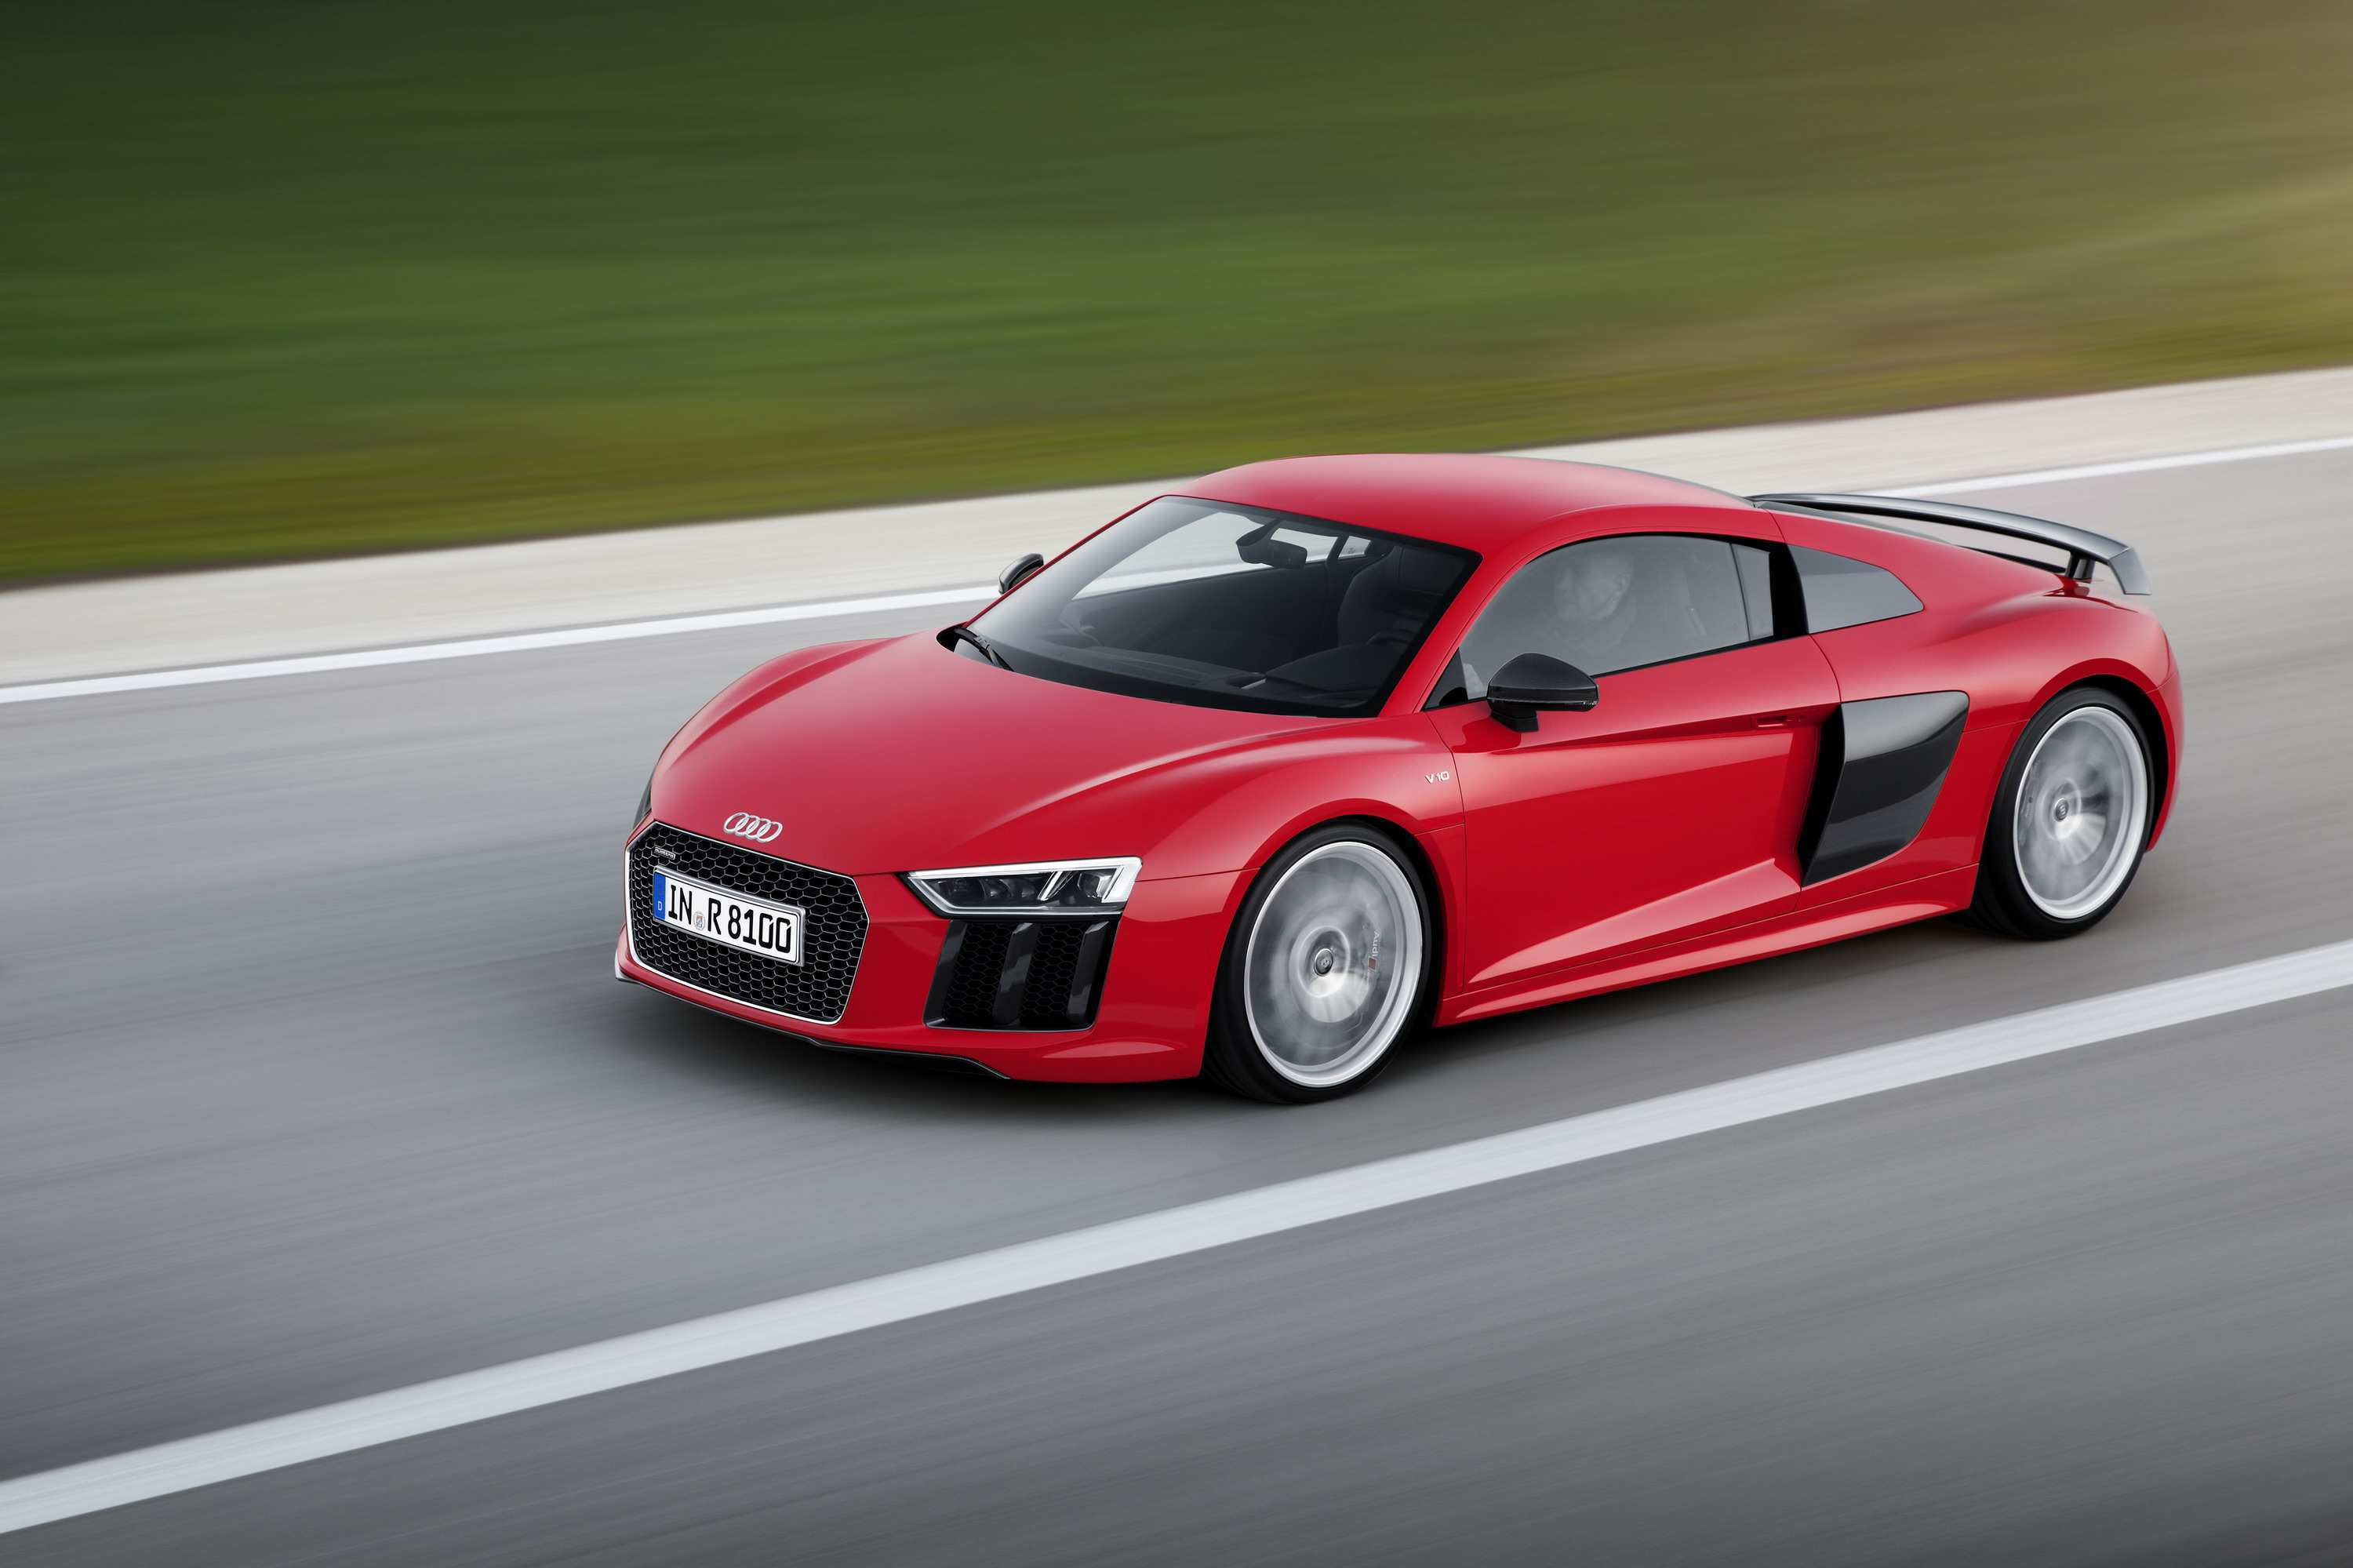 32 The 2020 Audi R8 E Tron Price Design And Review